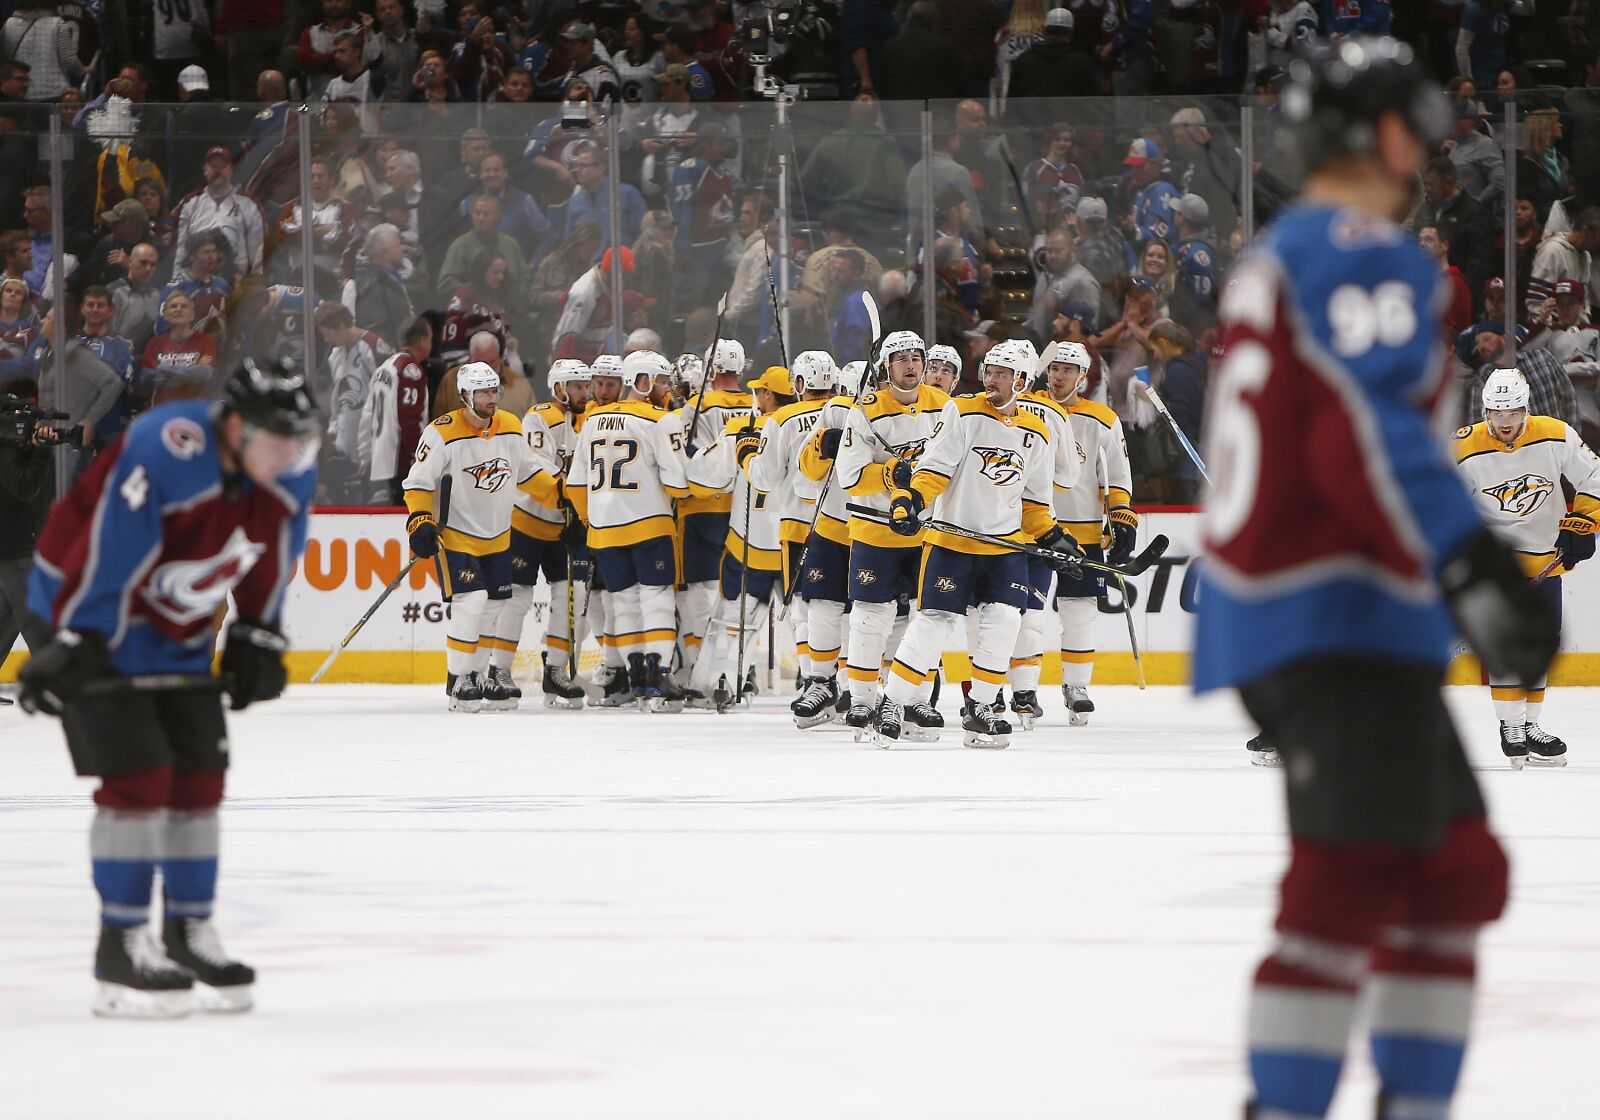 948415162-nhl-apr-18-stanley-cup-playoffs-first-round-game-4-predators-at-avalanche.jpg